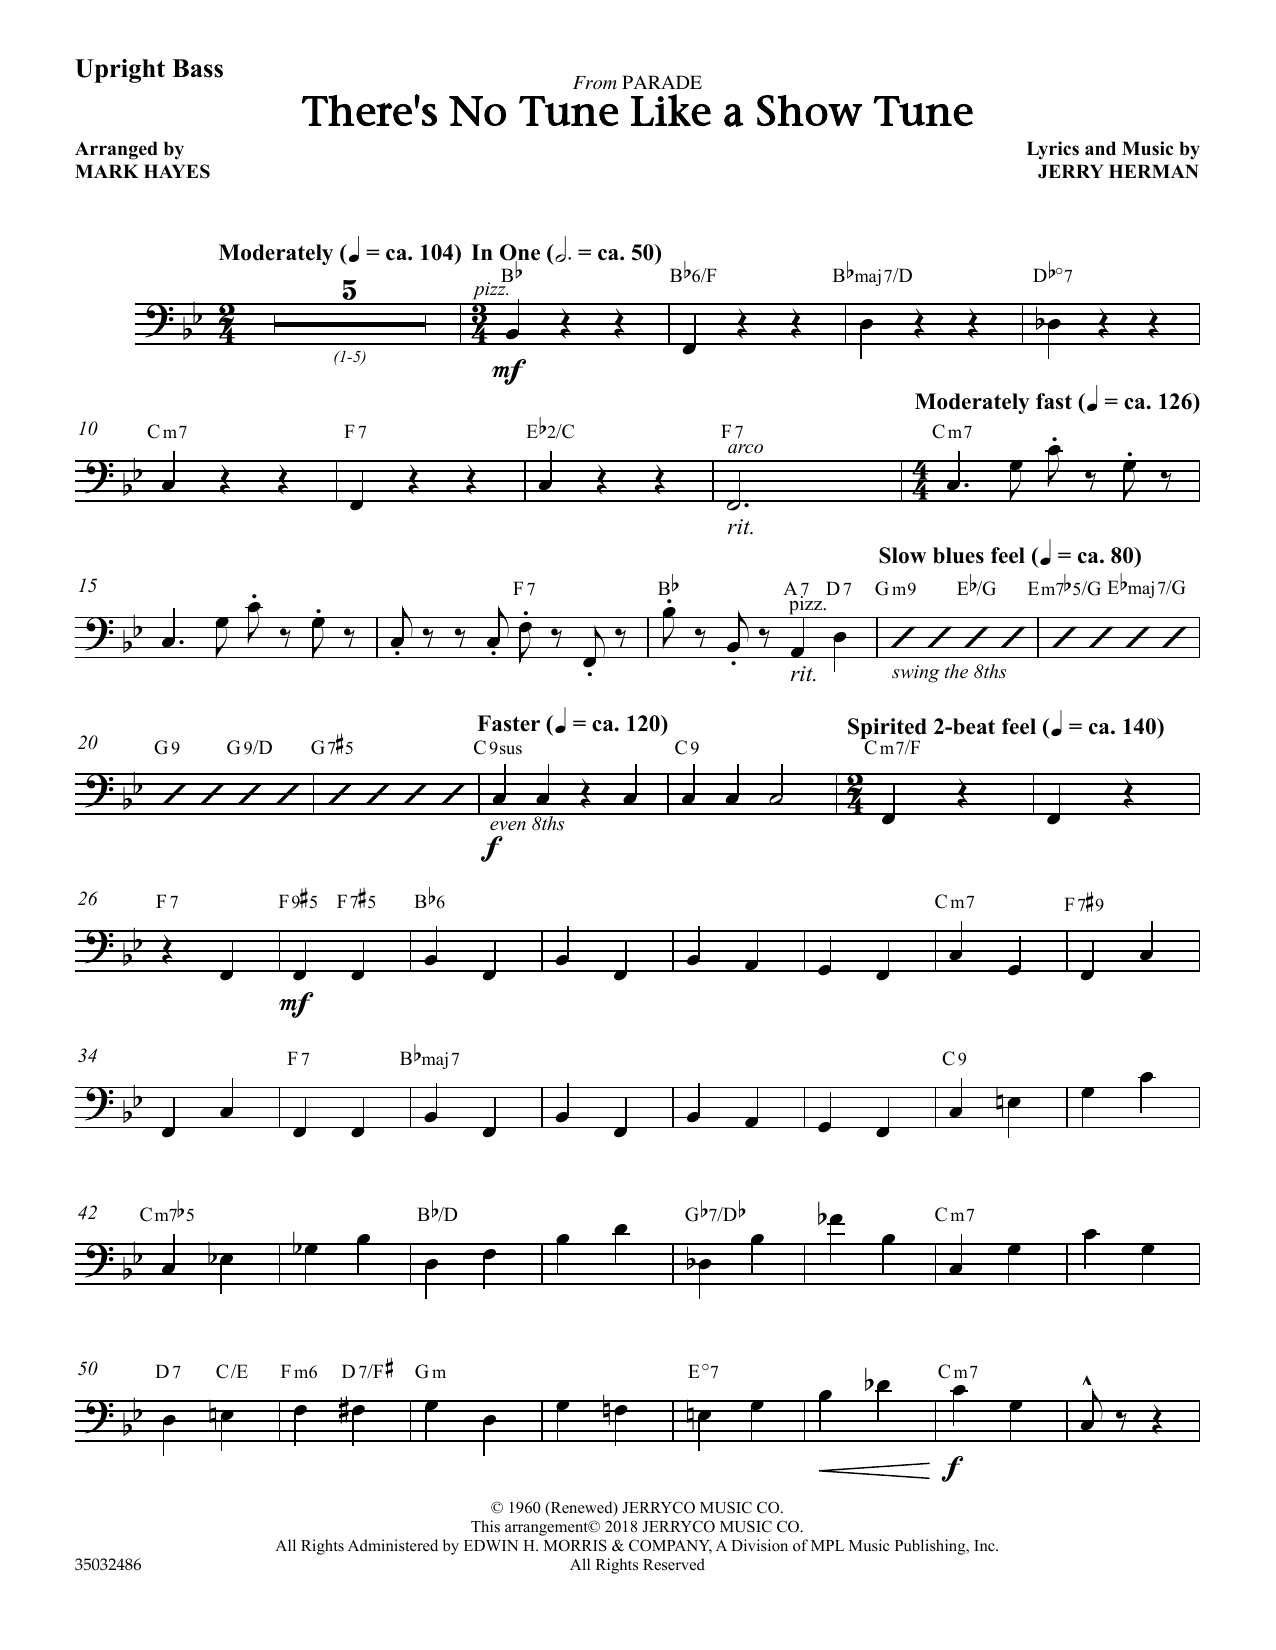 Jerry Herman There's No Tune Like a Show Tune (arr. Mark Hayes) - Upright Bass sheet music notes and chords. Download Printable PDF.